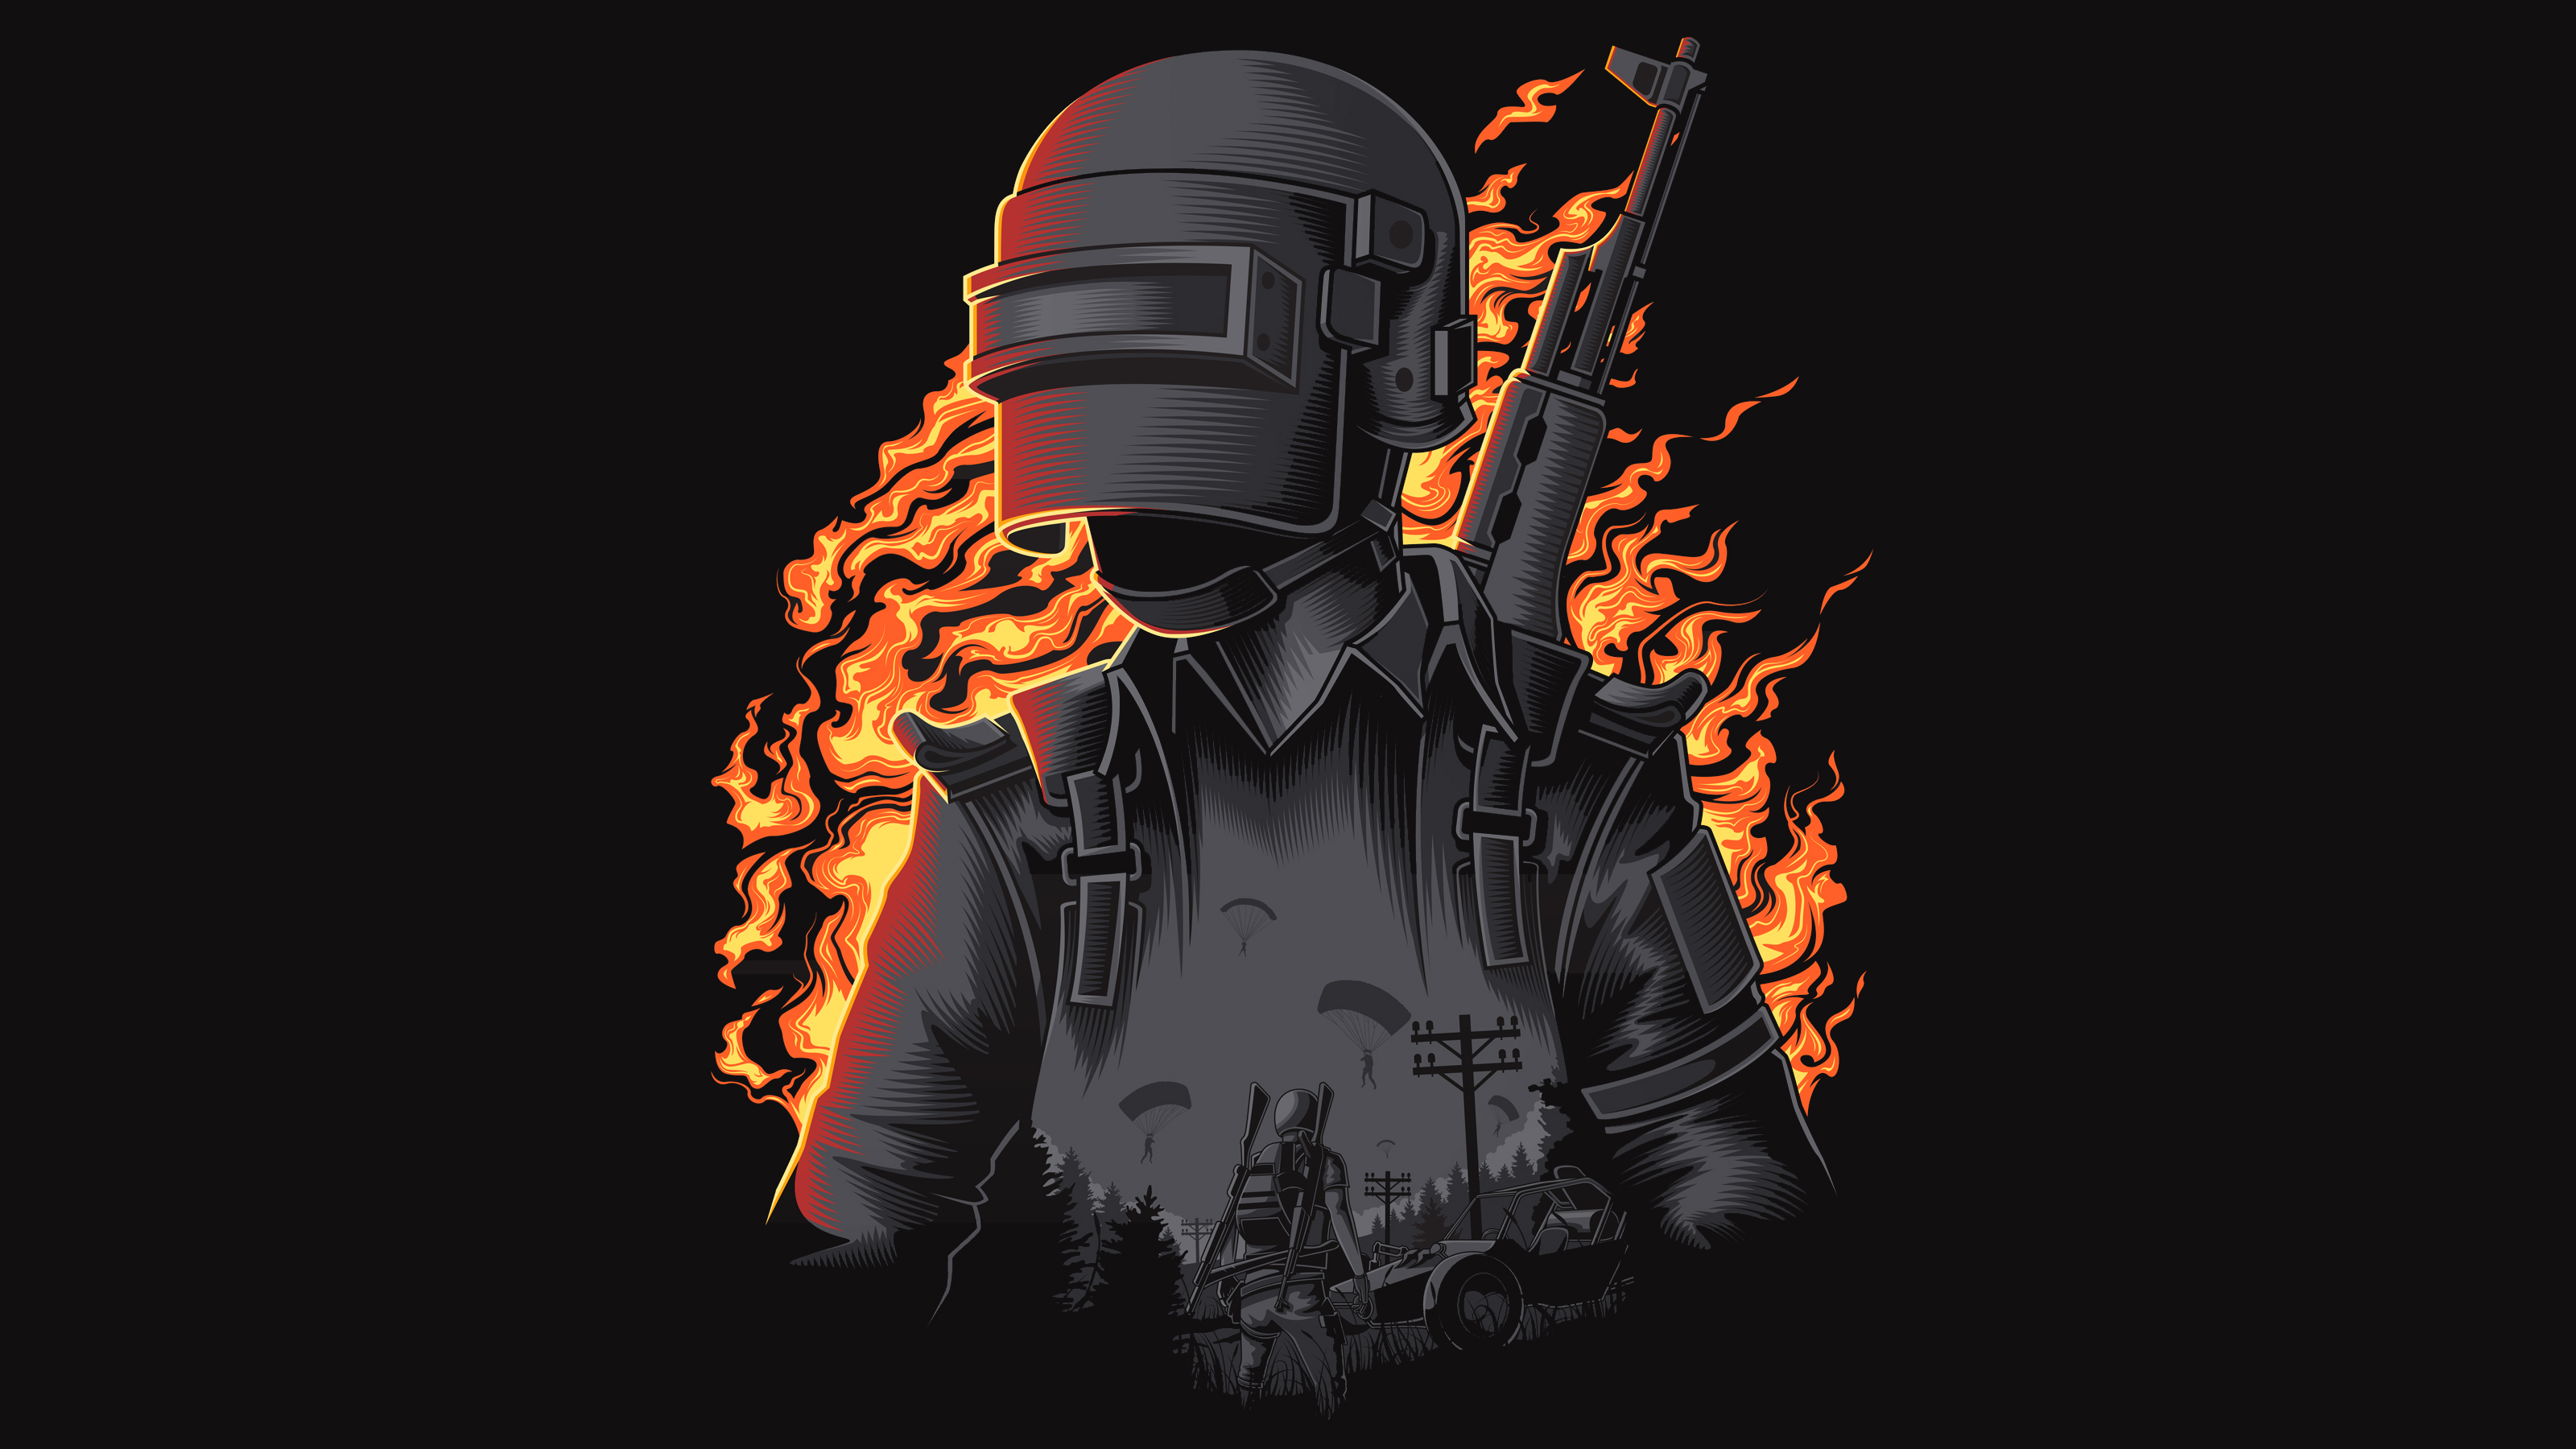 Pubg Wallpaper Iphone 6 Plus: PUBG Dark Illustration Wallpapers